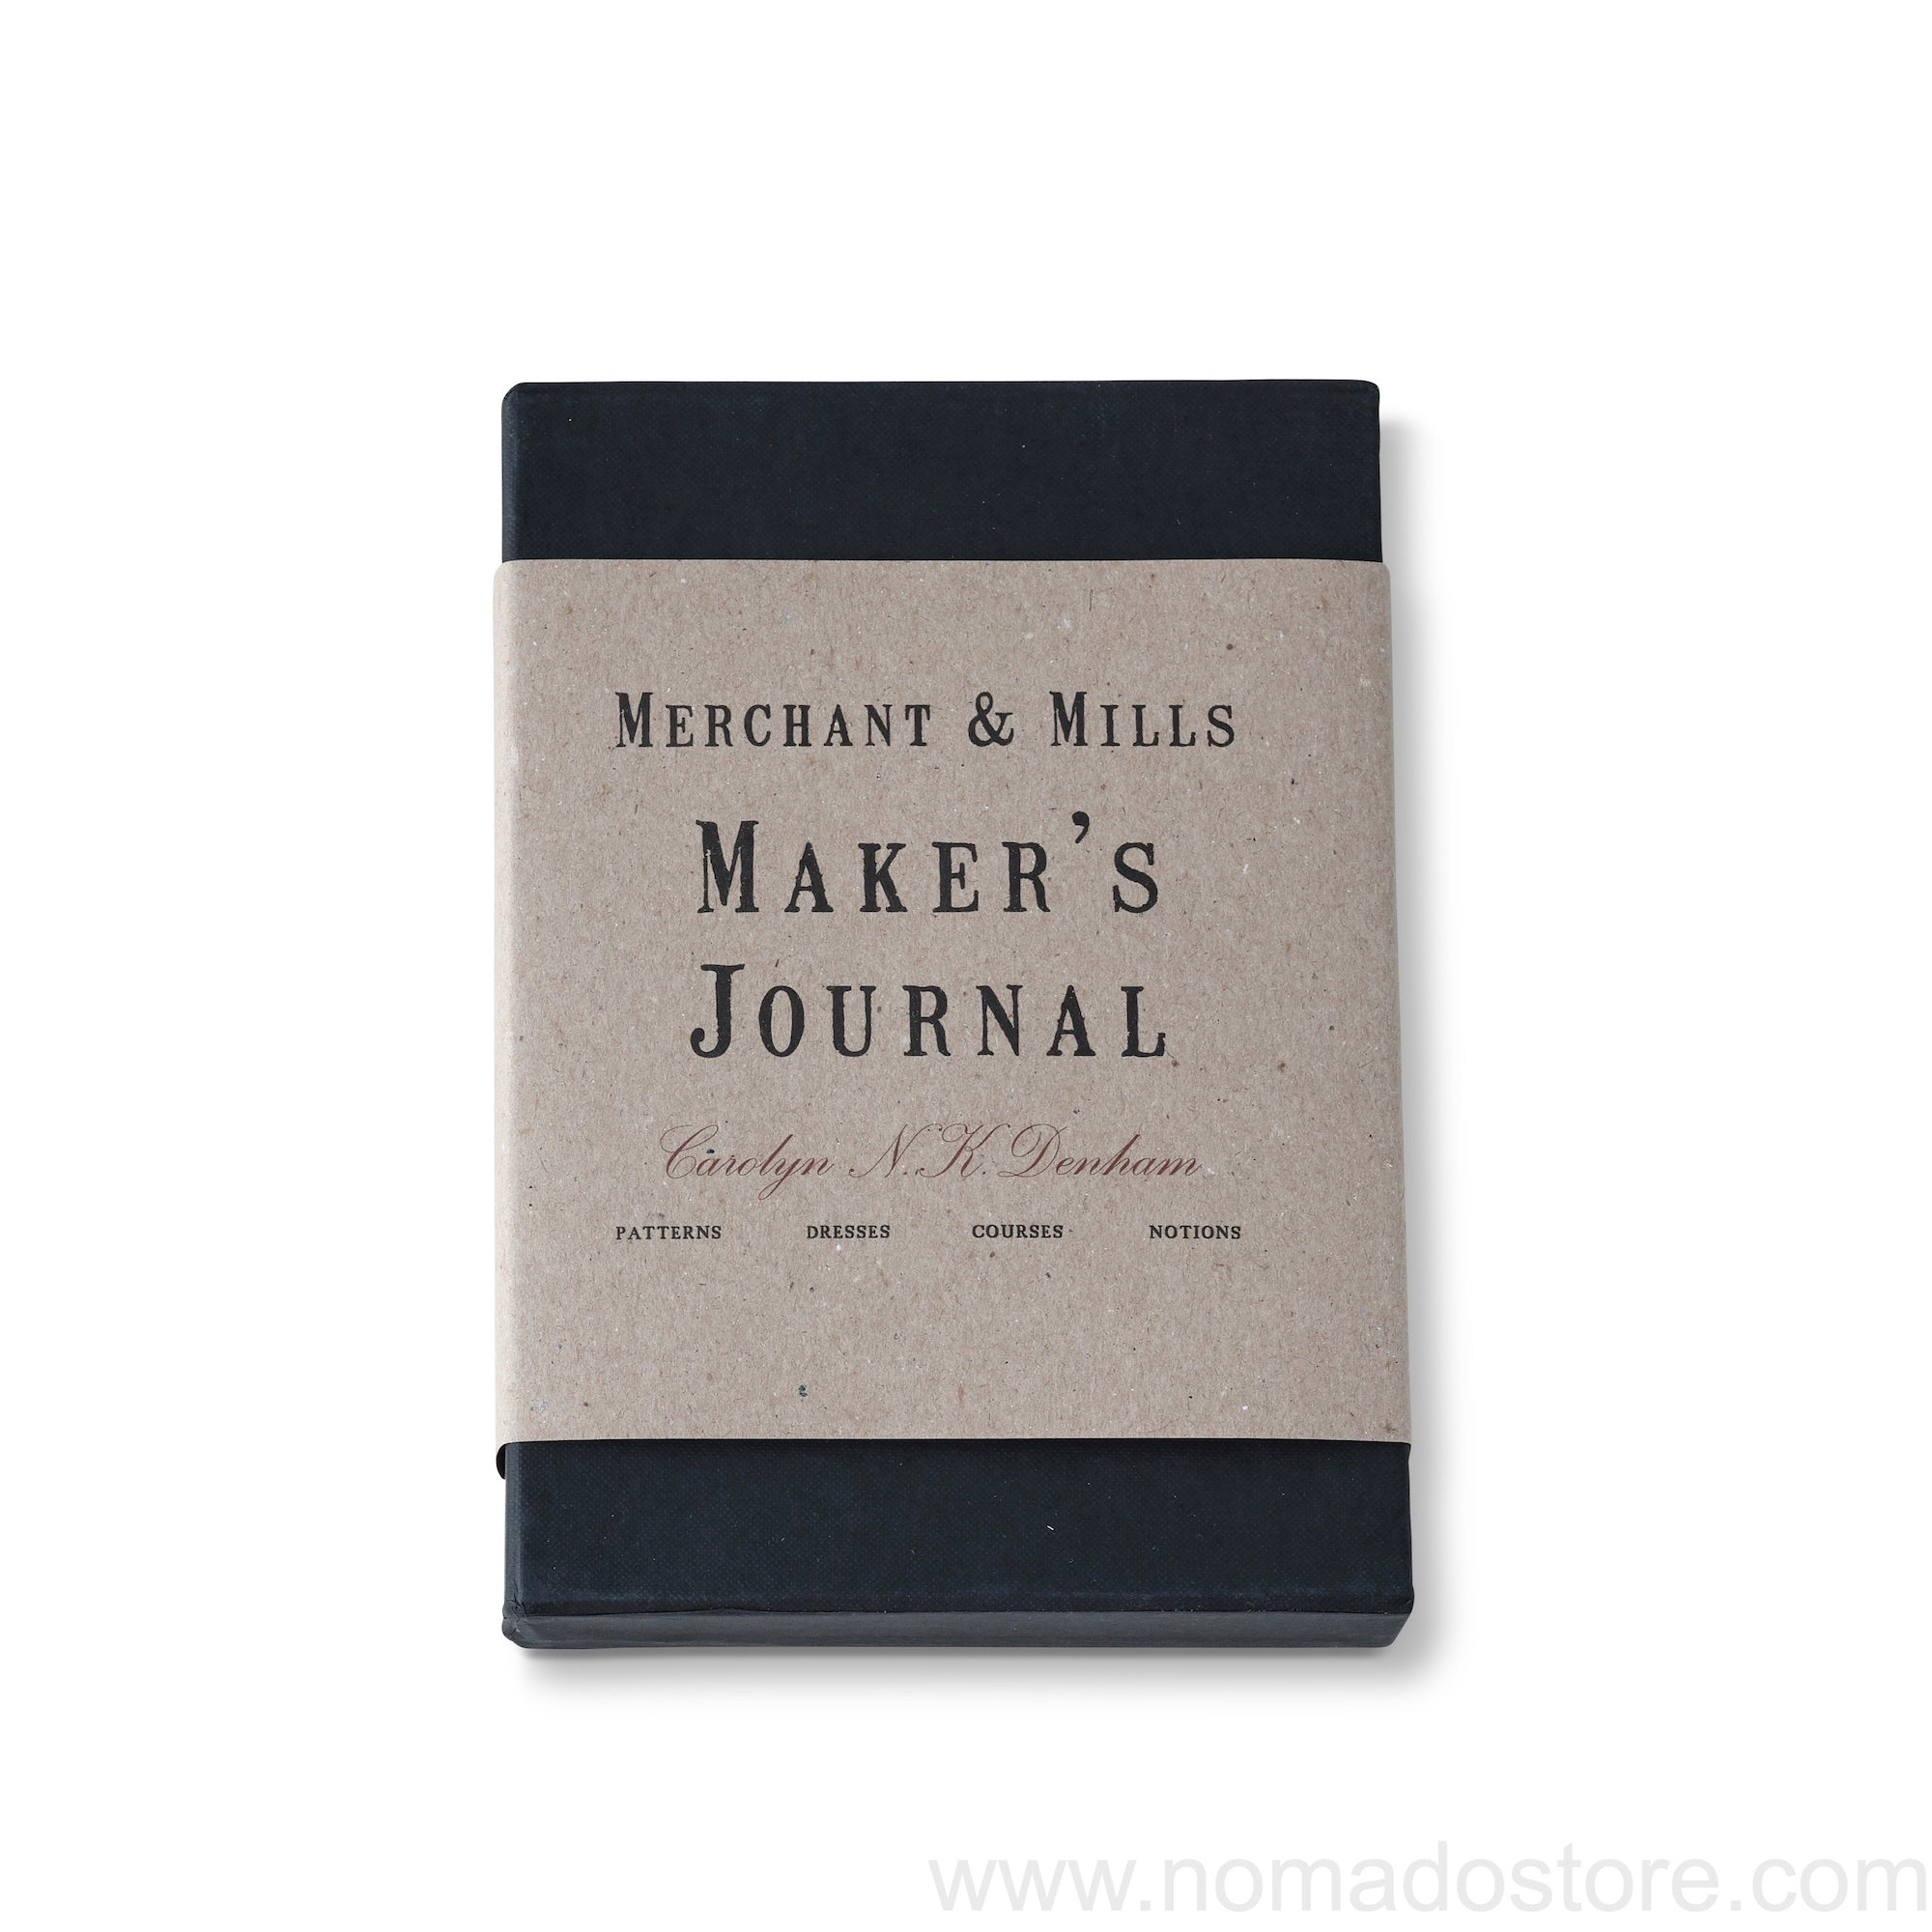 Merchant & Mills Makers Journal - NOMADO Store